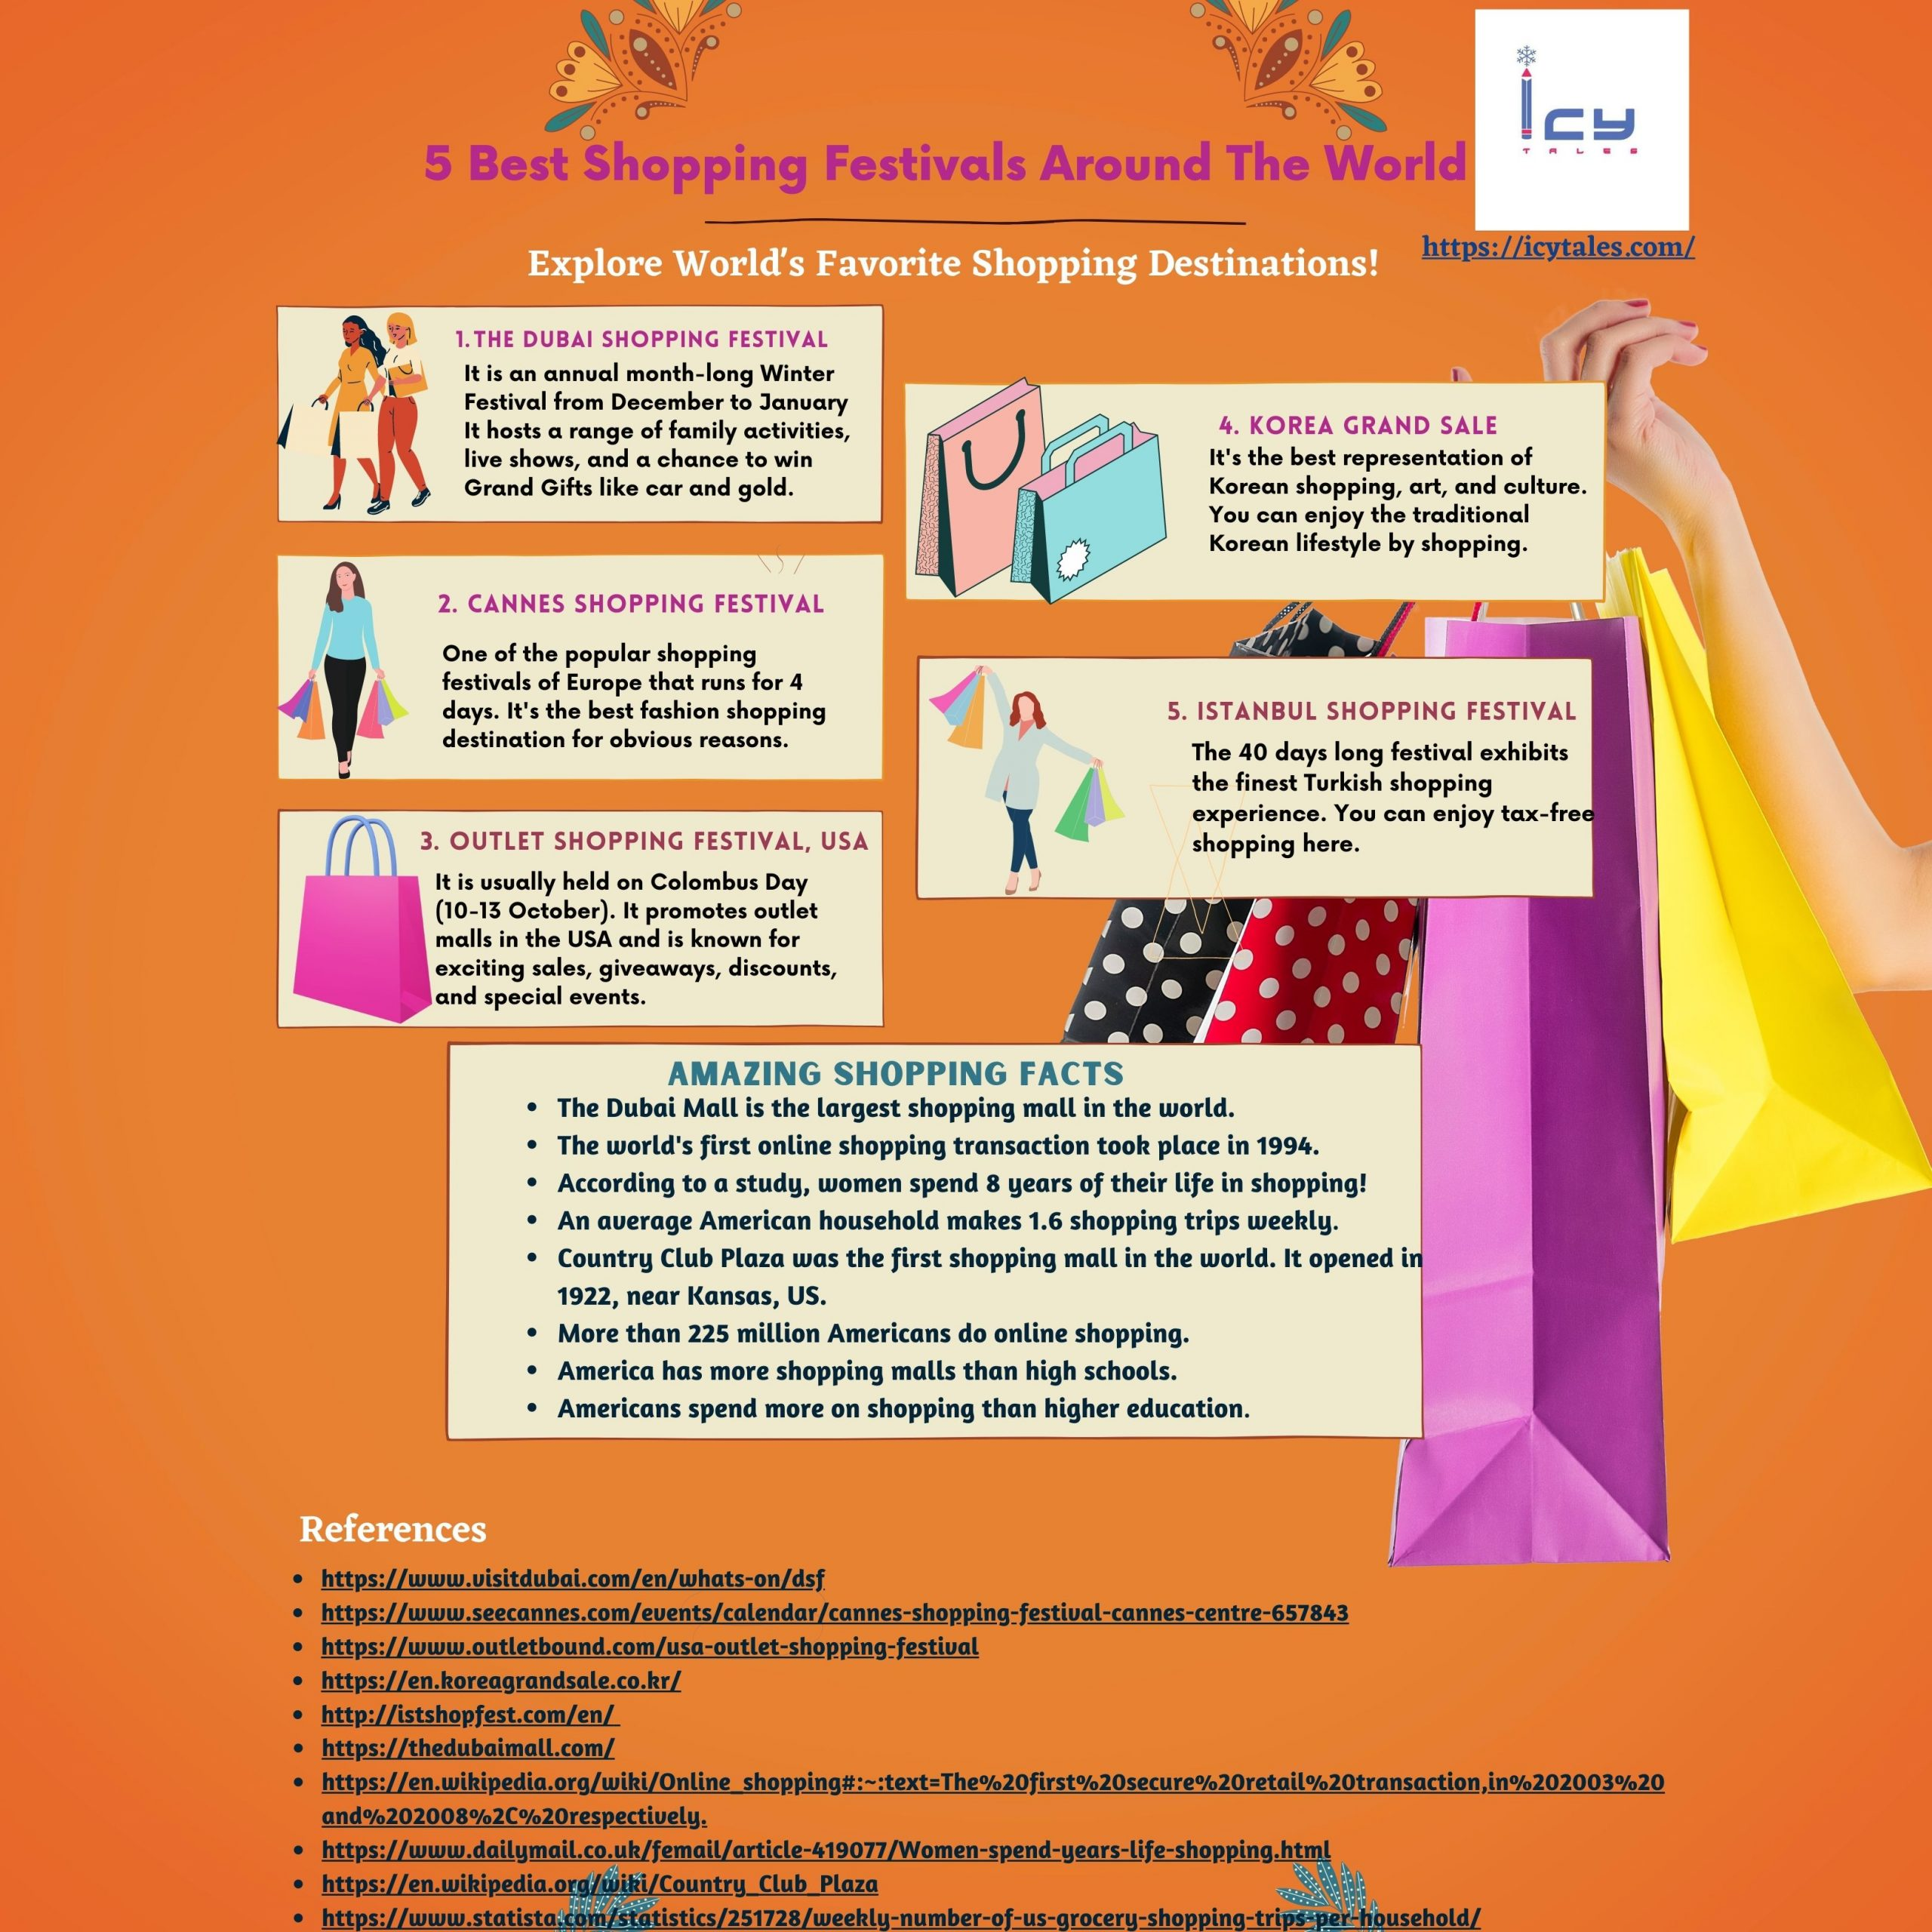 Amazing Shopping Facts and Festivals